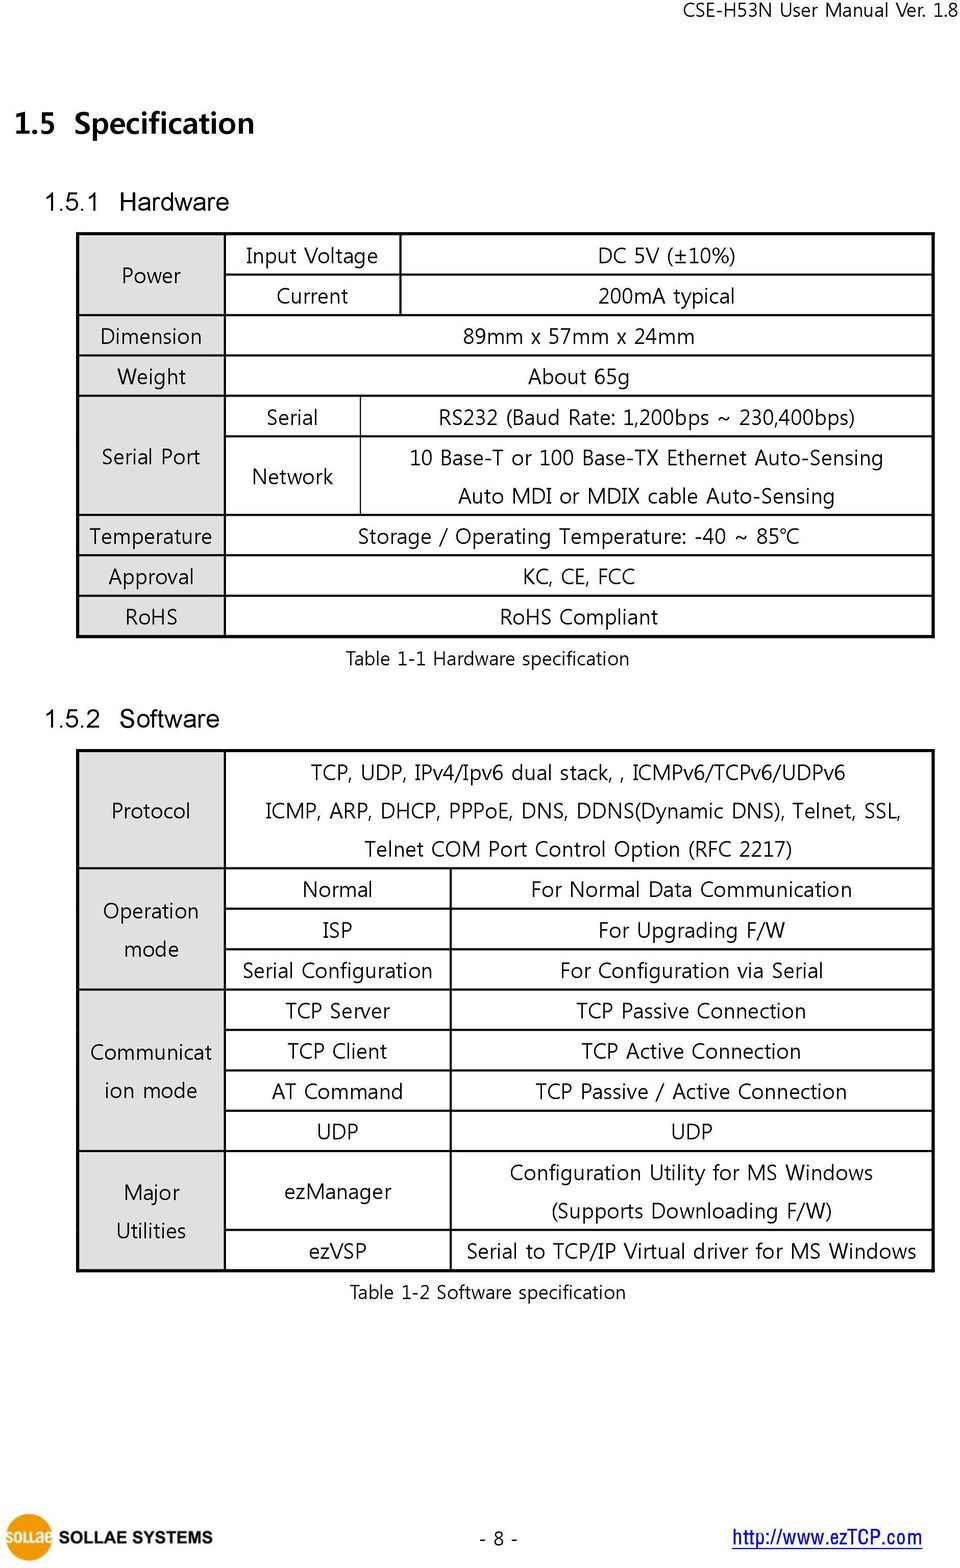 Hardware specification 1.5.